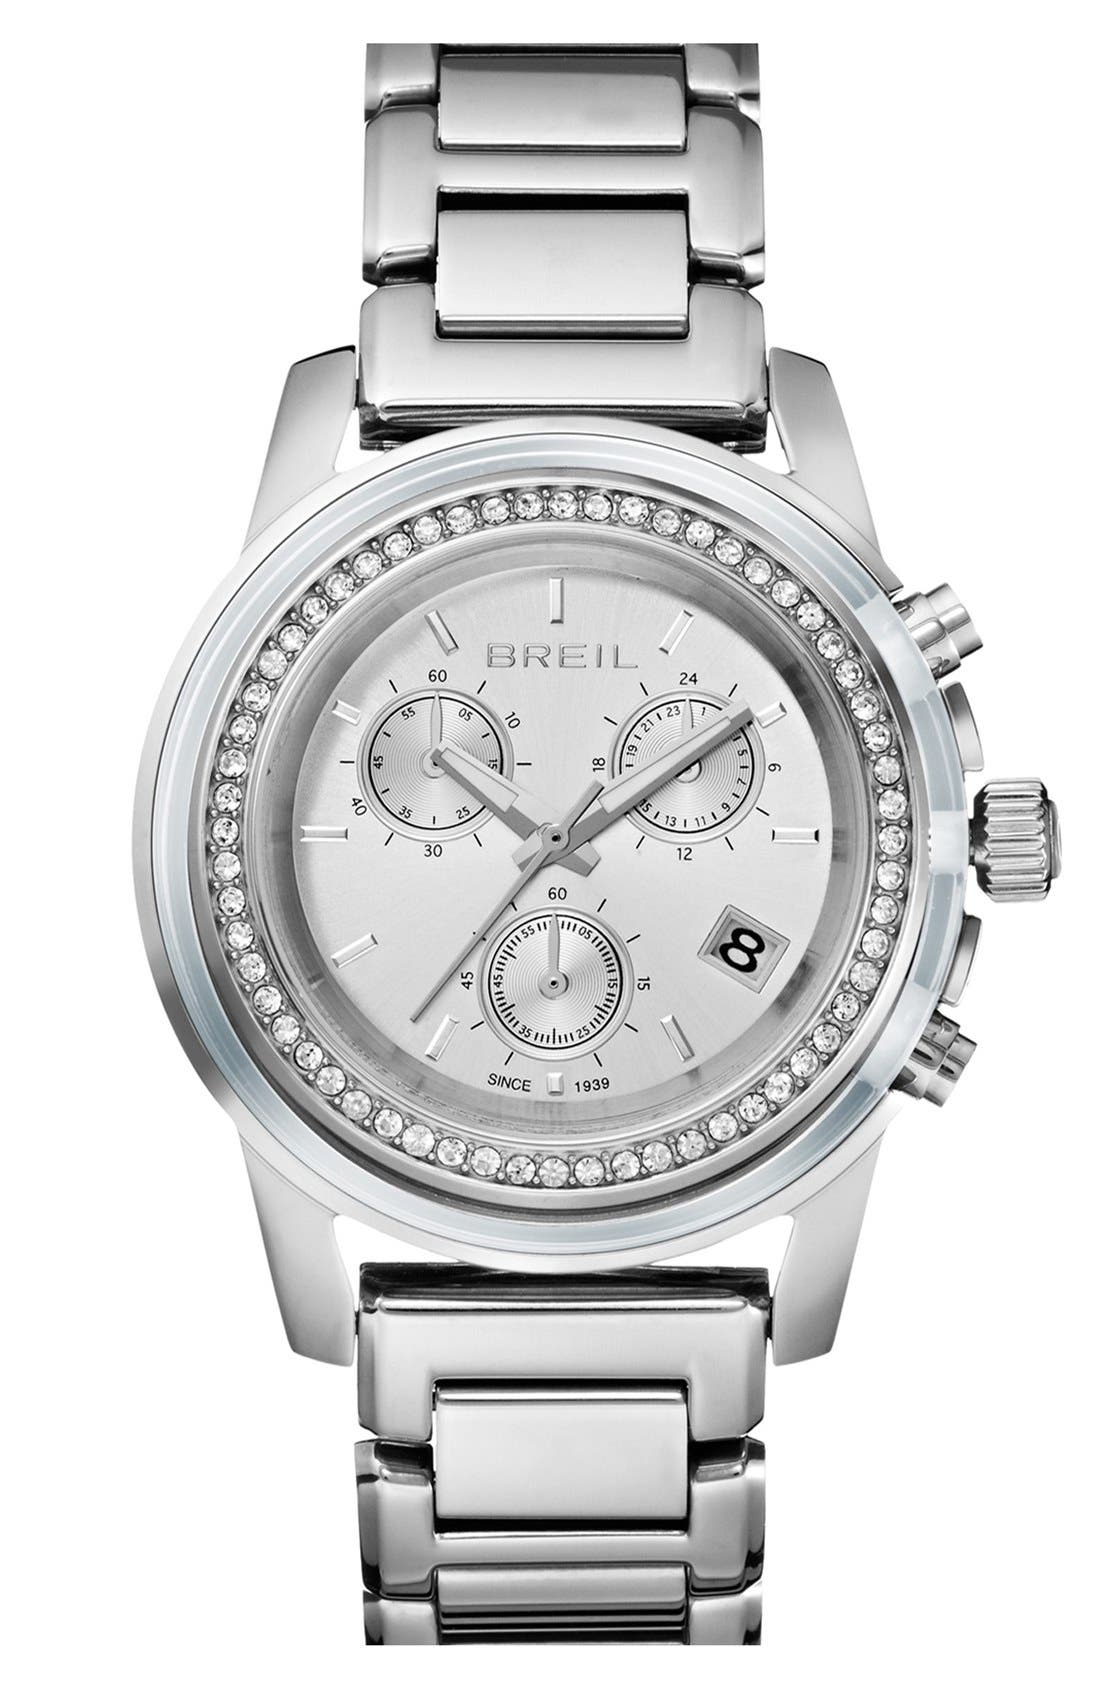 Main Image - Breil 'Orchestra' Crystal Bezel Chronograph Bracelet Watch, 37mm